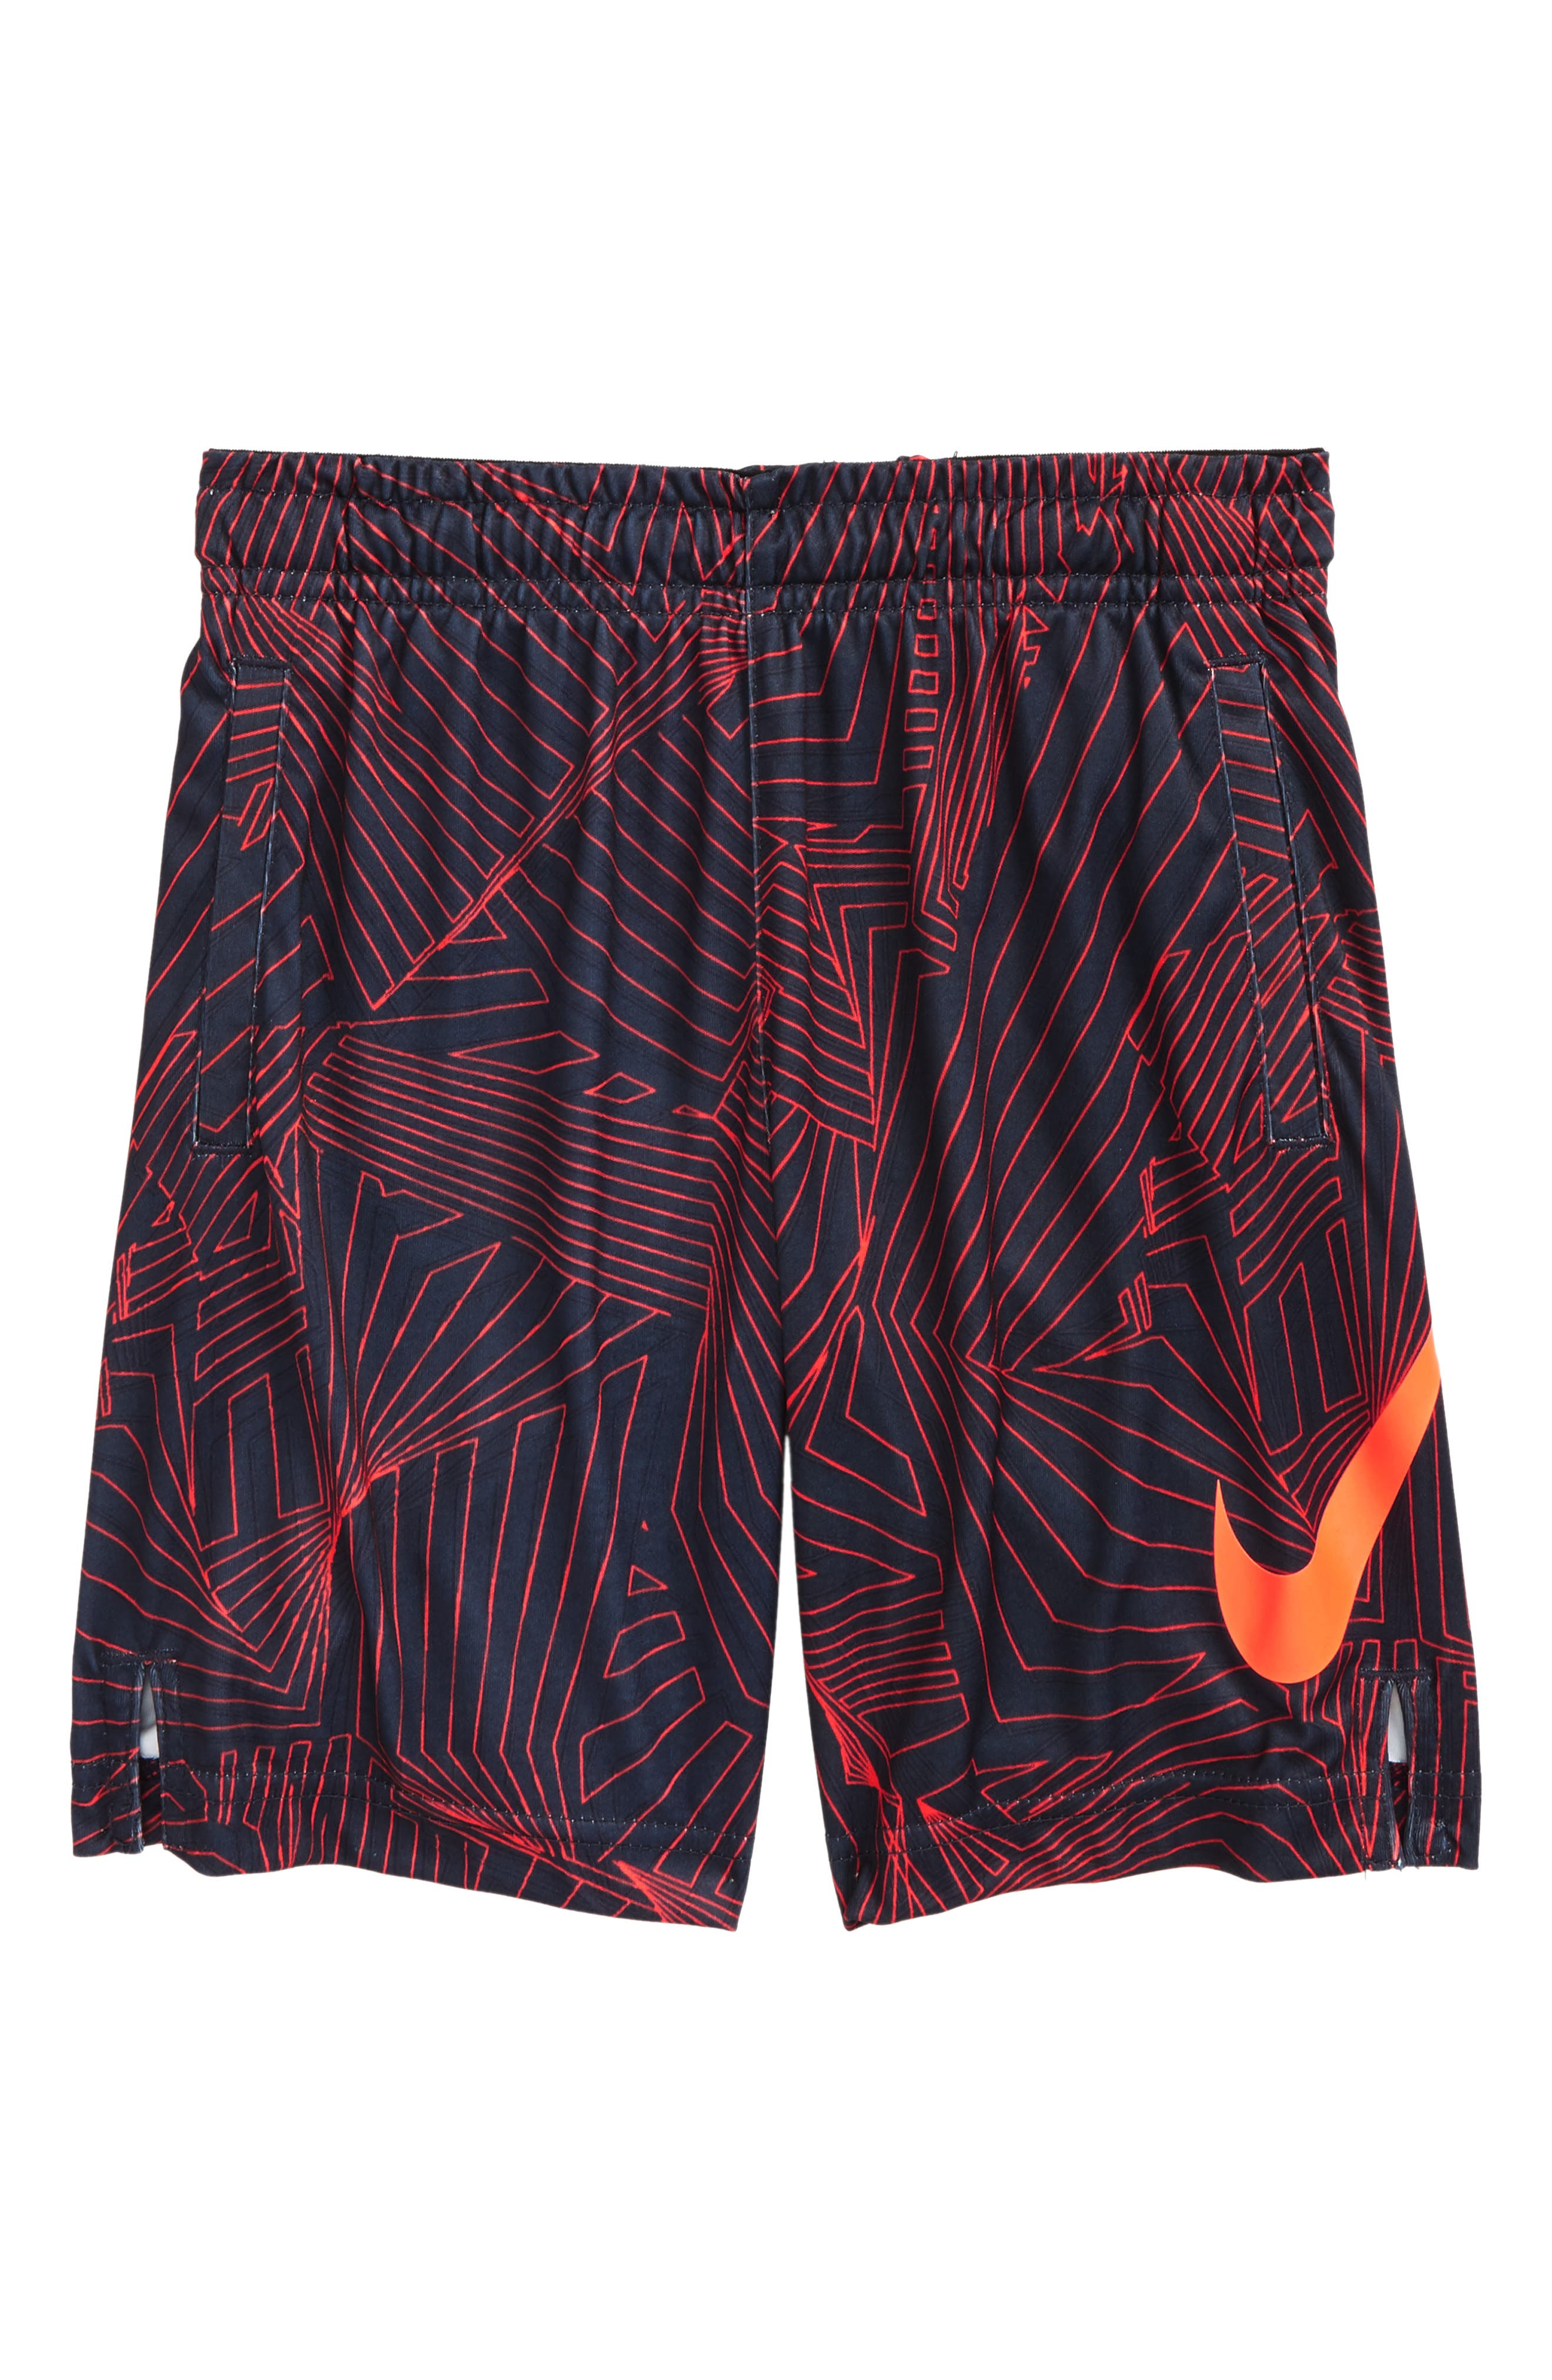 Main Image - Nike AOP Dry Shorts (Toddler Boys & Little Boys)